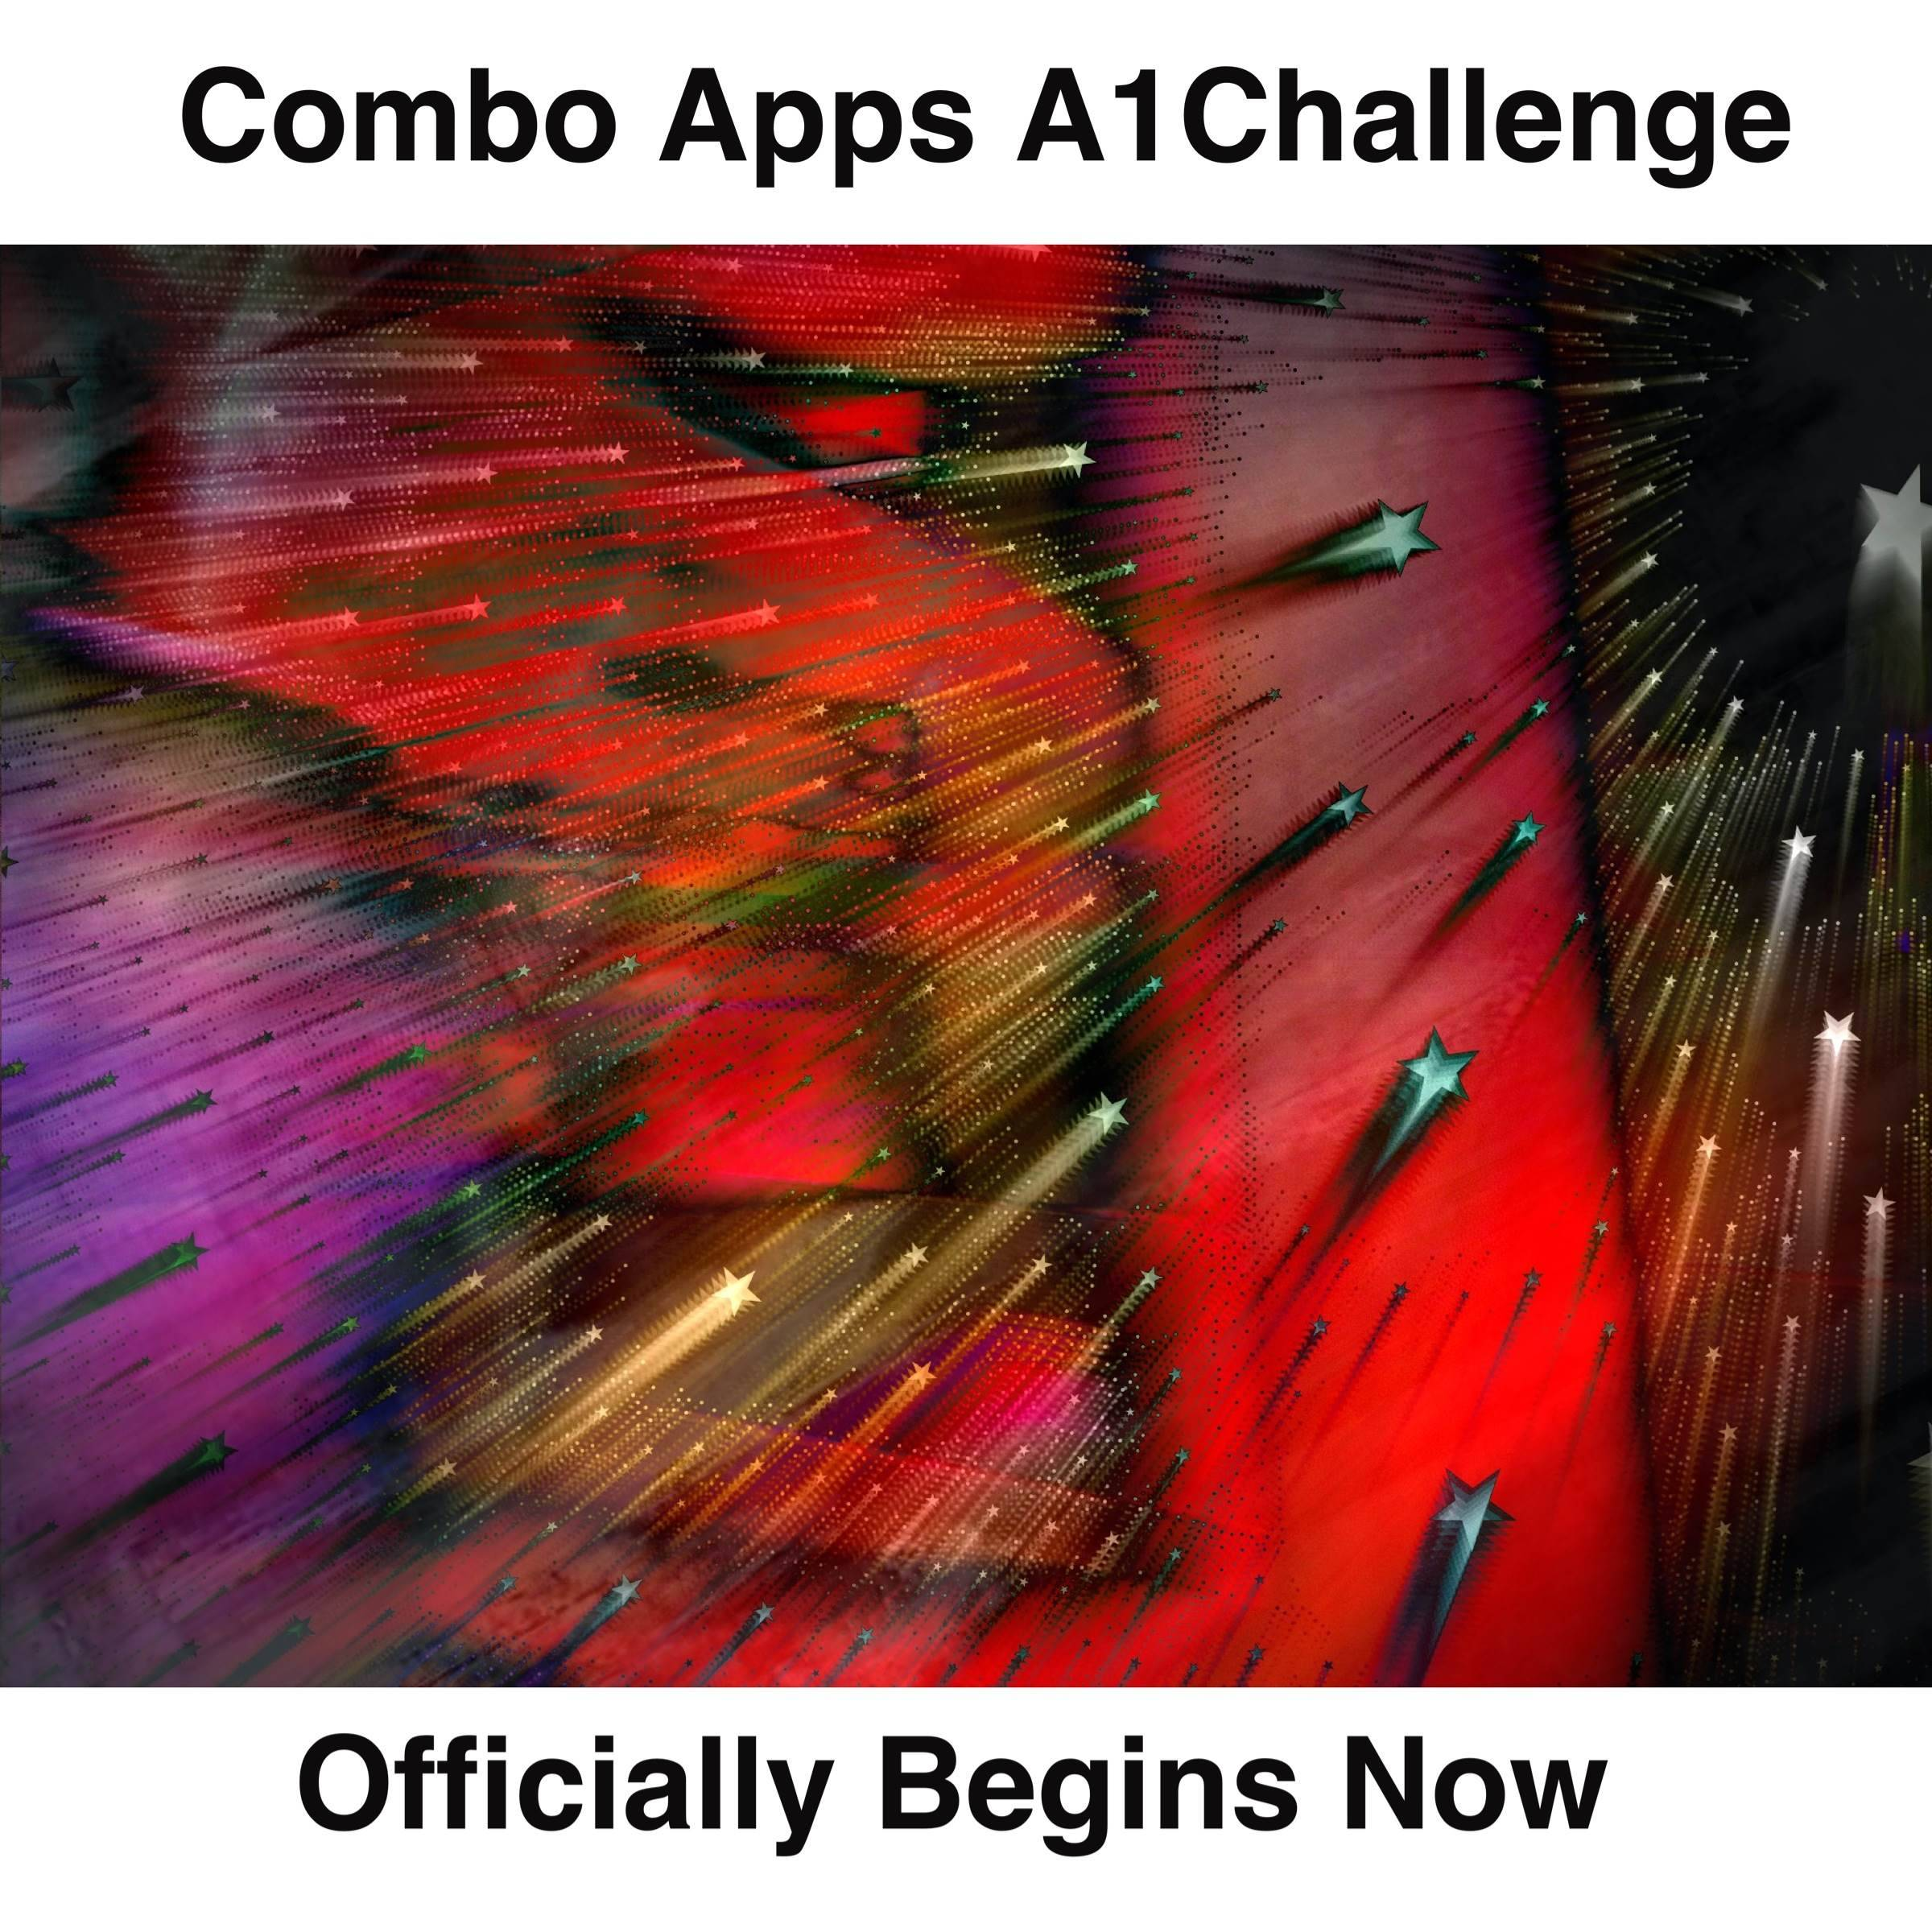 The Combo Apps A1 Challenge in Instagram